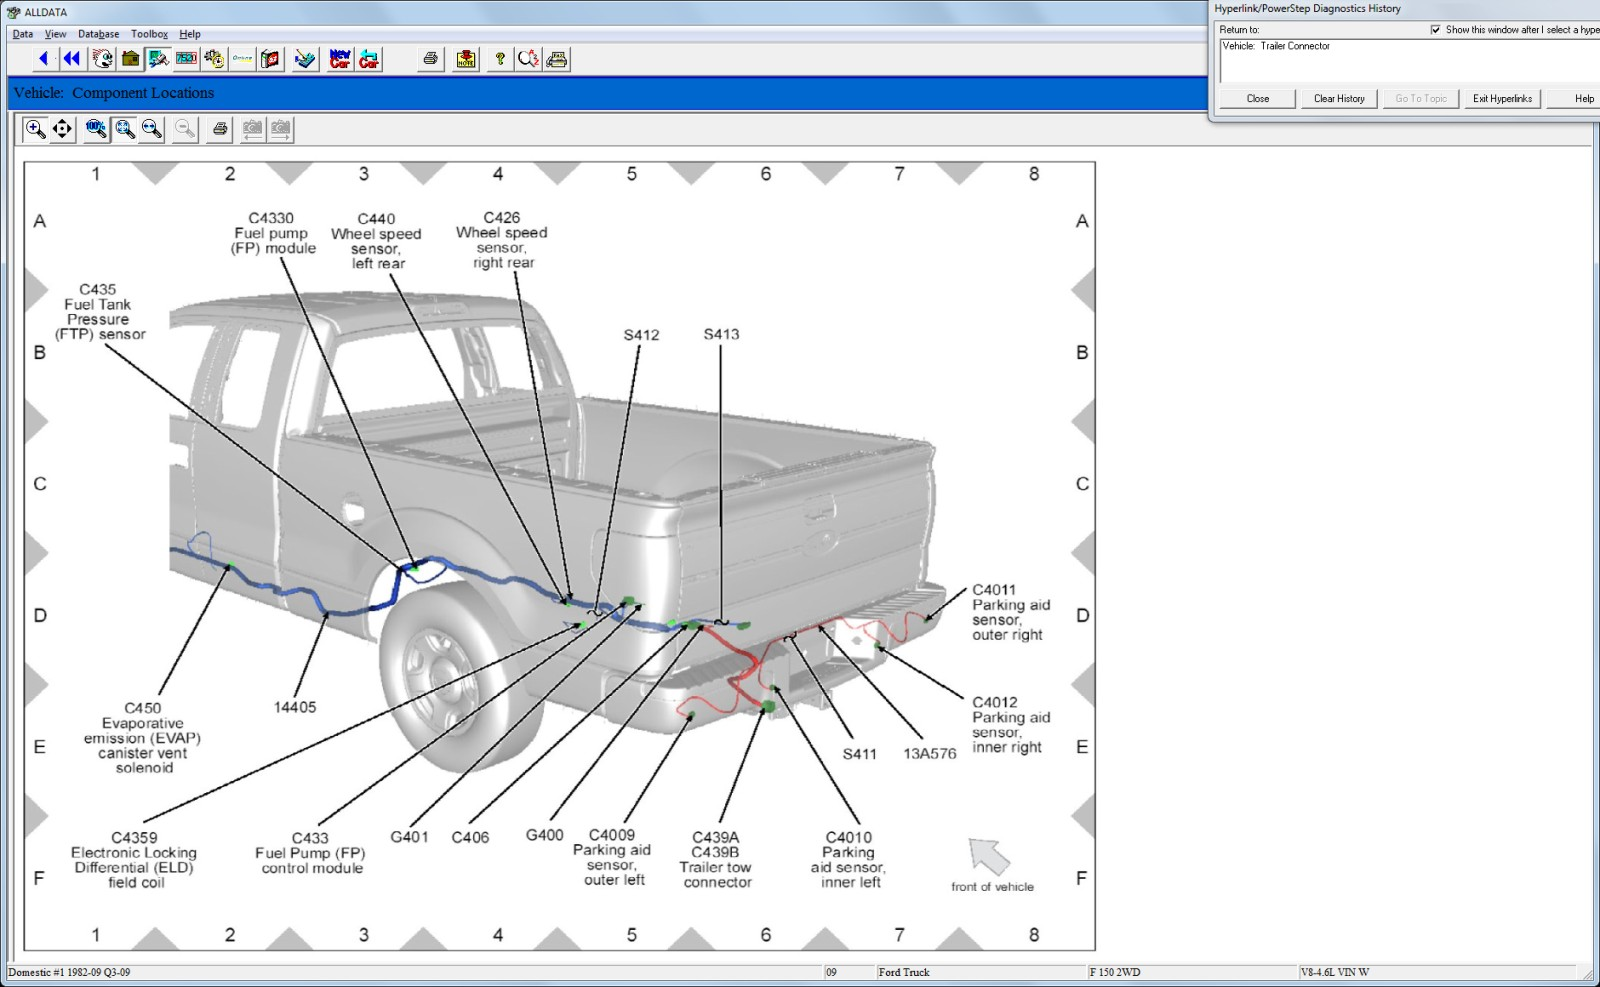 7 way wiring diagram inspirational 2001 f350 trailer wiring diagram 2001 ford expedition trailer wiring of 7 way wiring diagram 7 way wiring diagram for f350 wiring diagram online